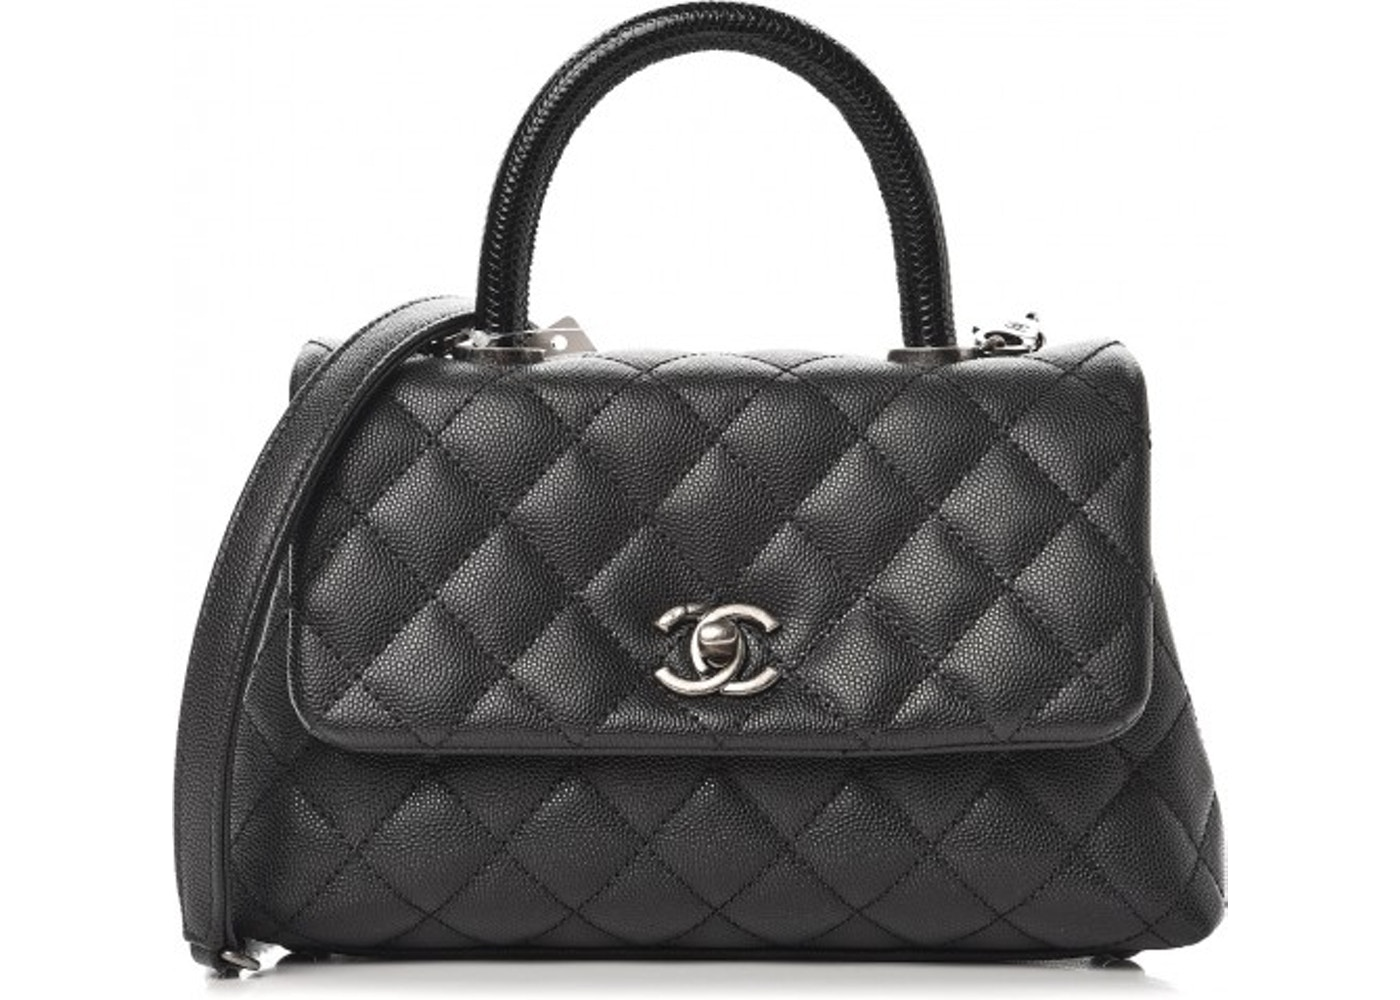 1cde5bcfda0978 Buy & Sell Chanel Other Handbags - Average Sale Price